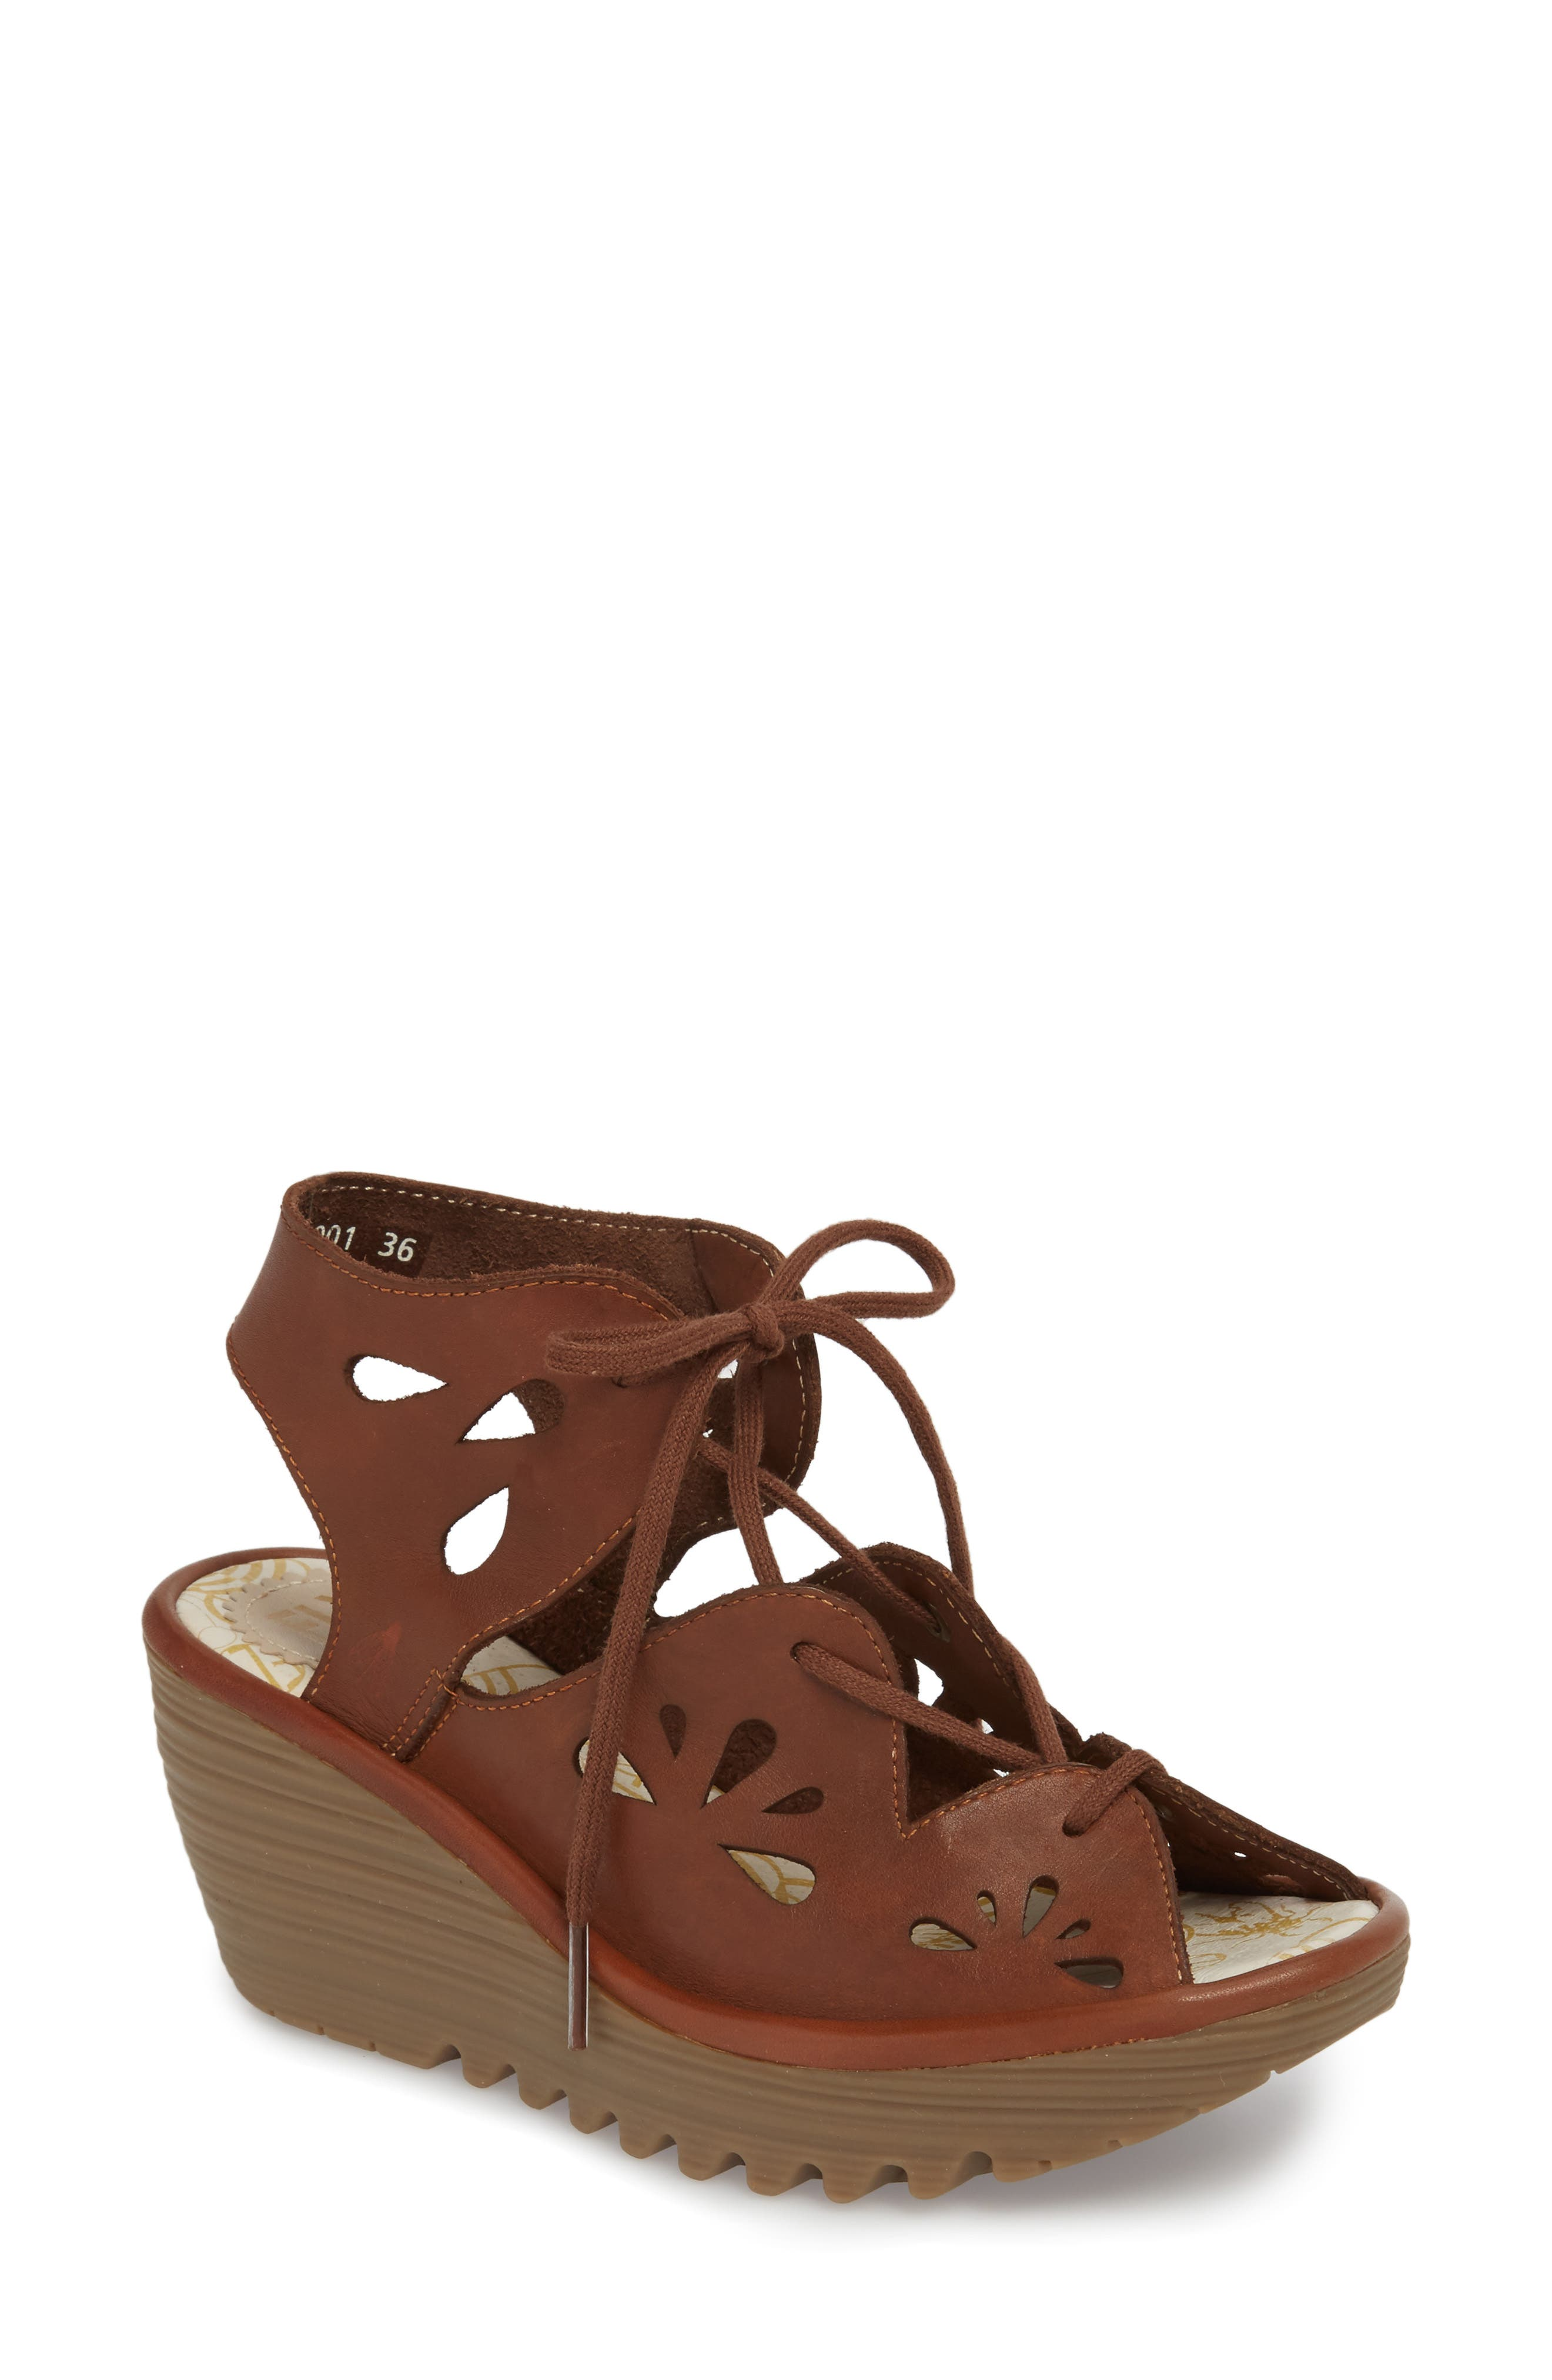 Alternate Image 1 Selected - Fly London Yote Sandal (Women)